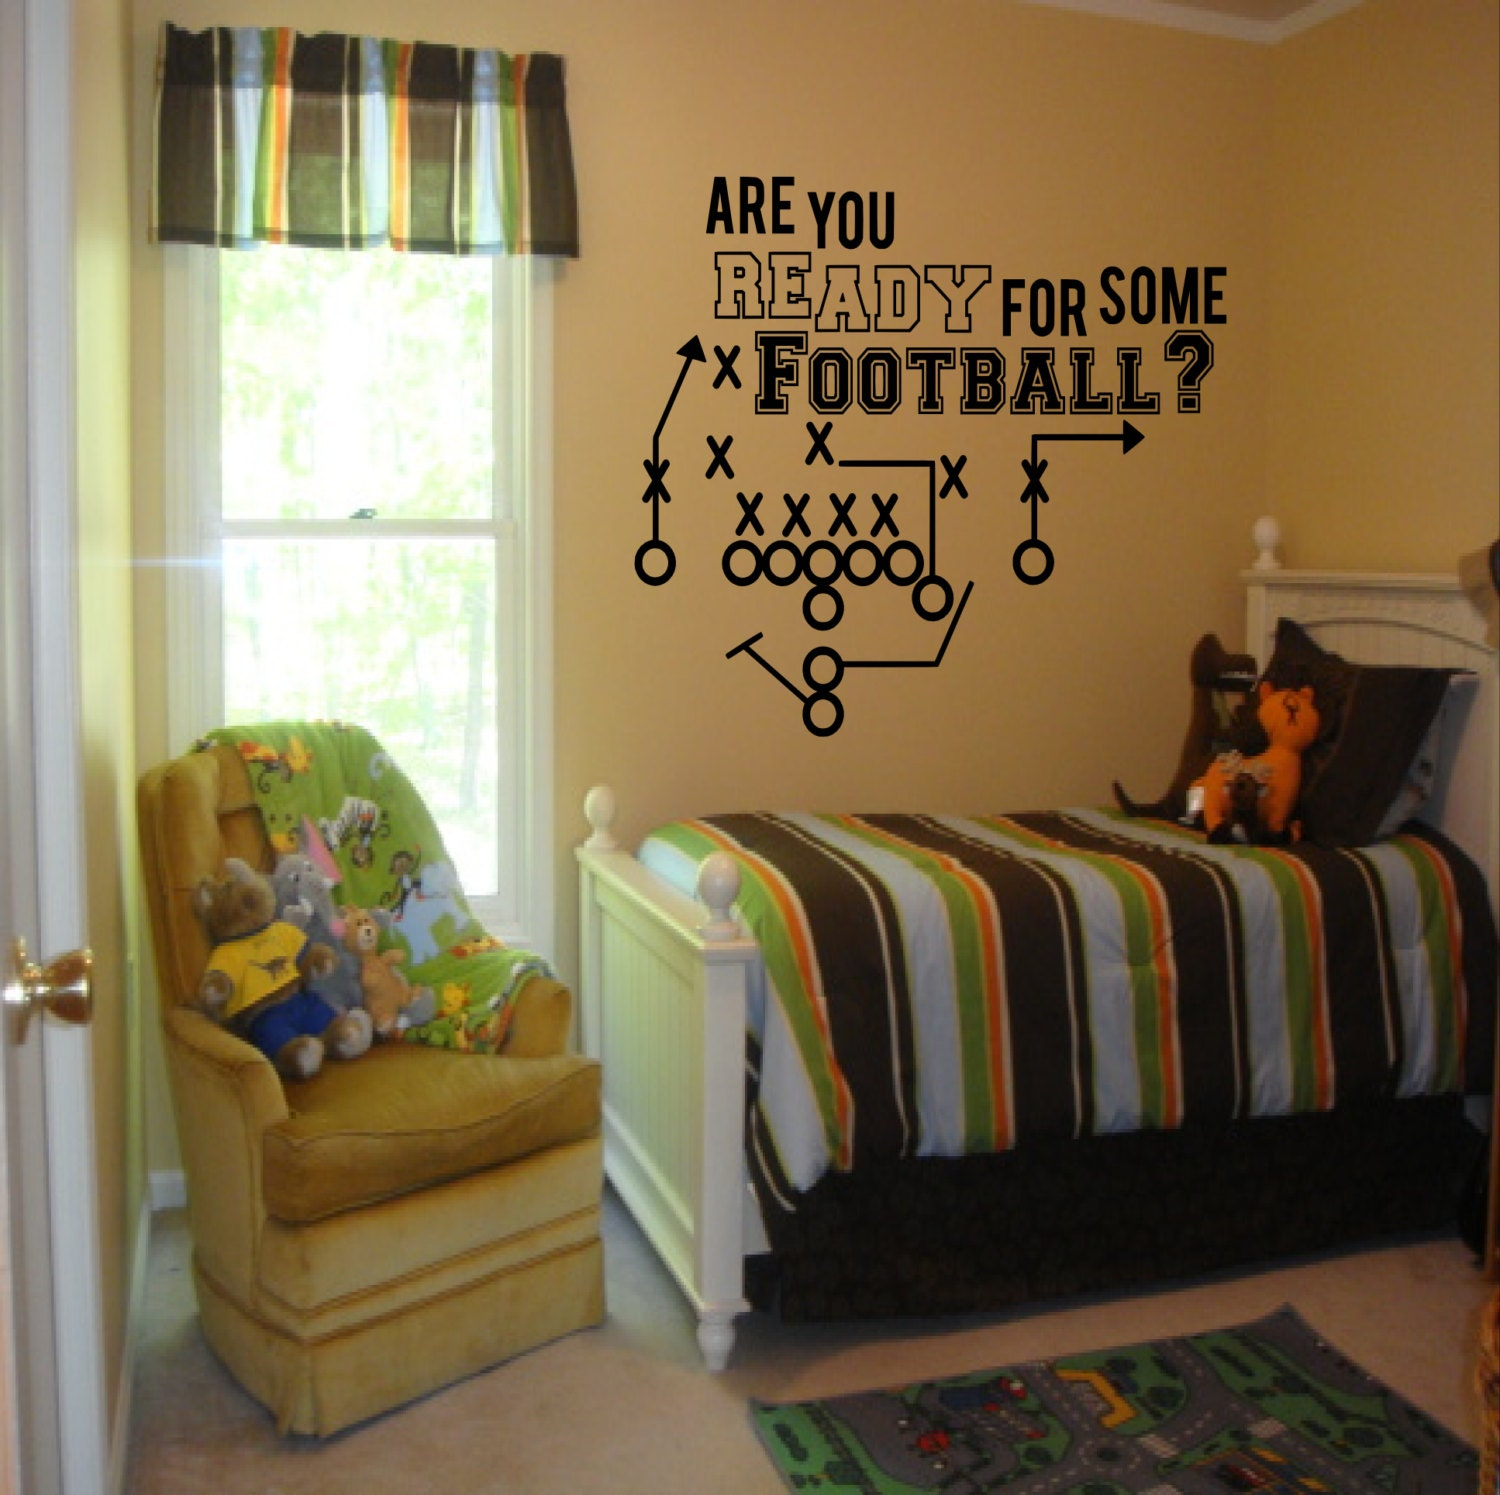 Are you ready for some football decal boys room decor zoom amipublicfo Choice Image